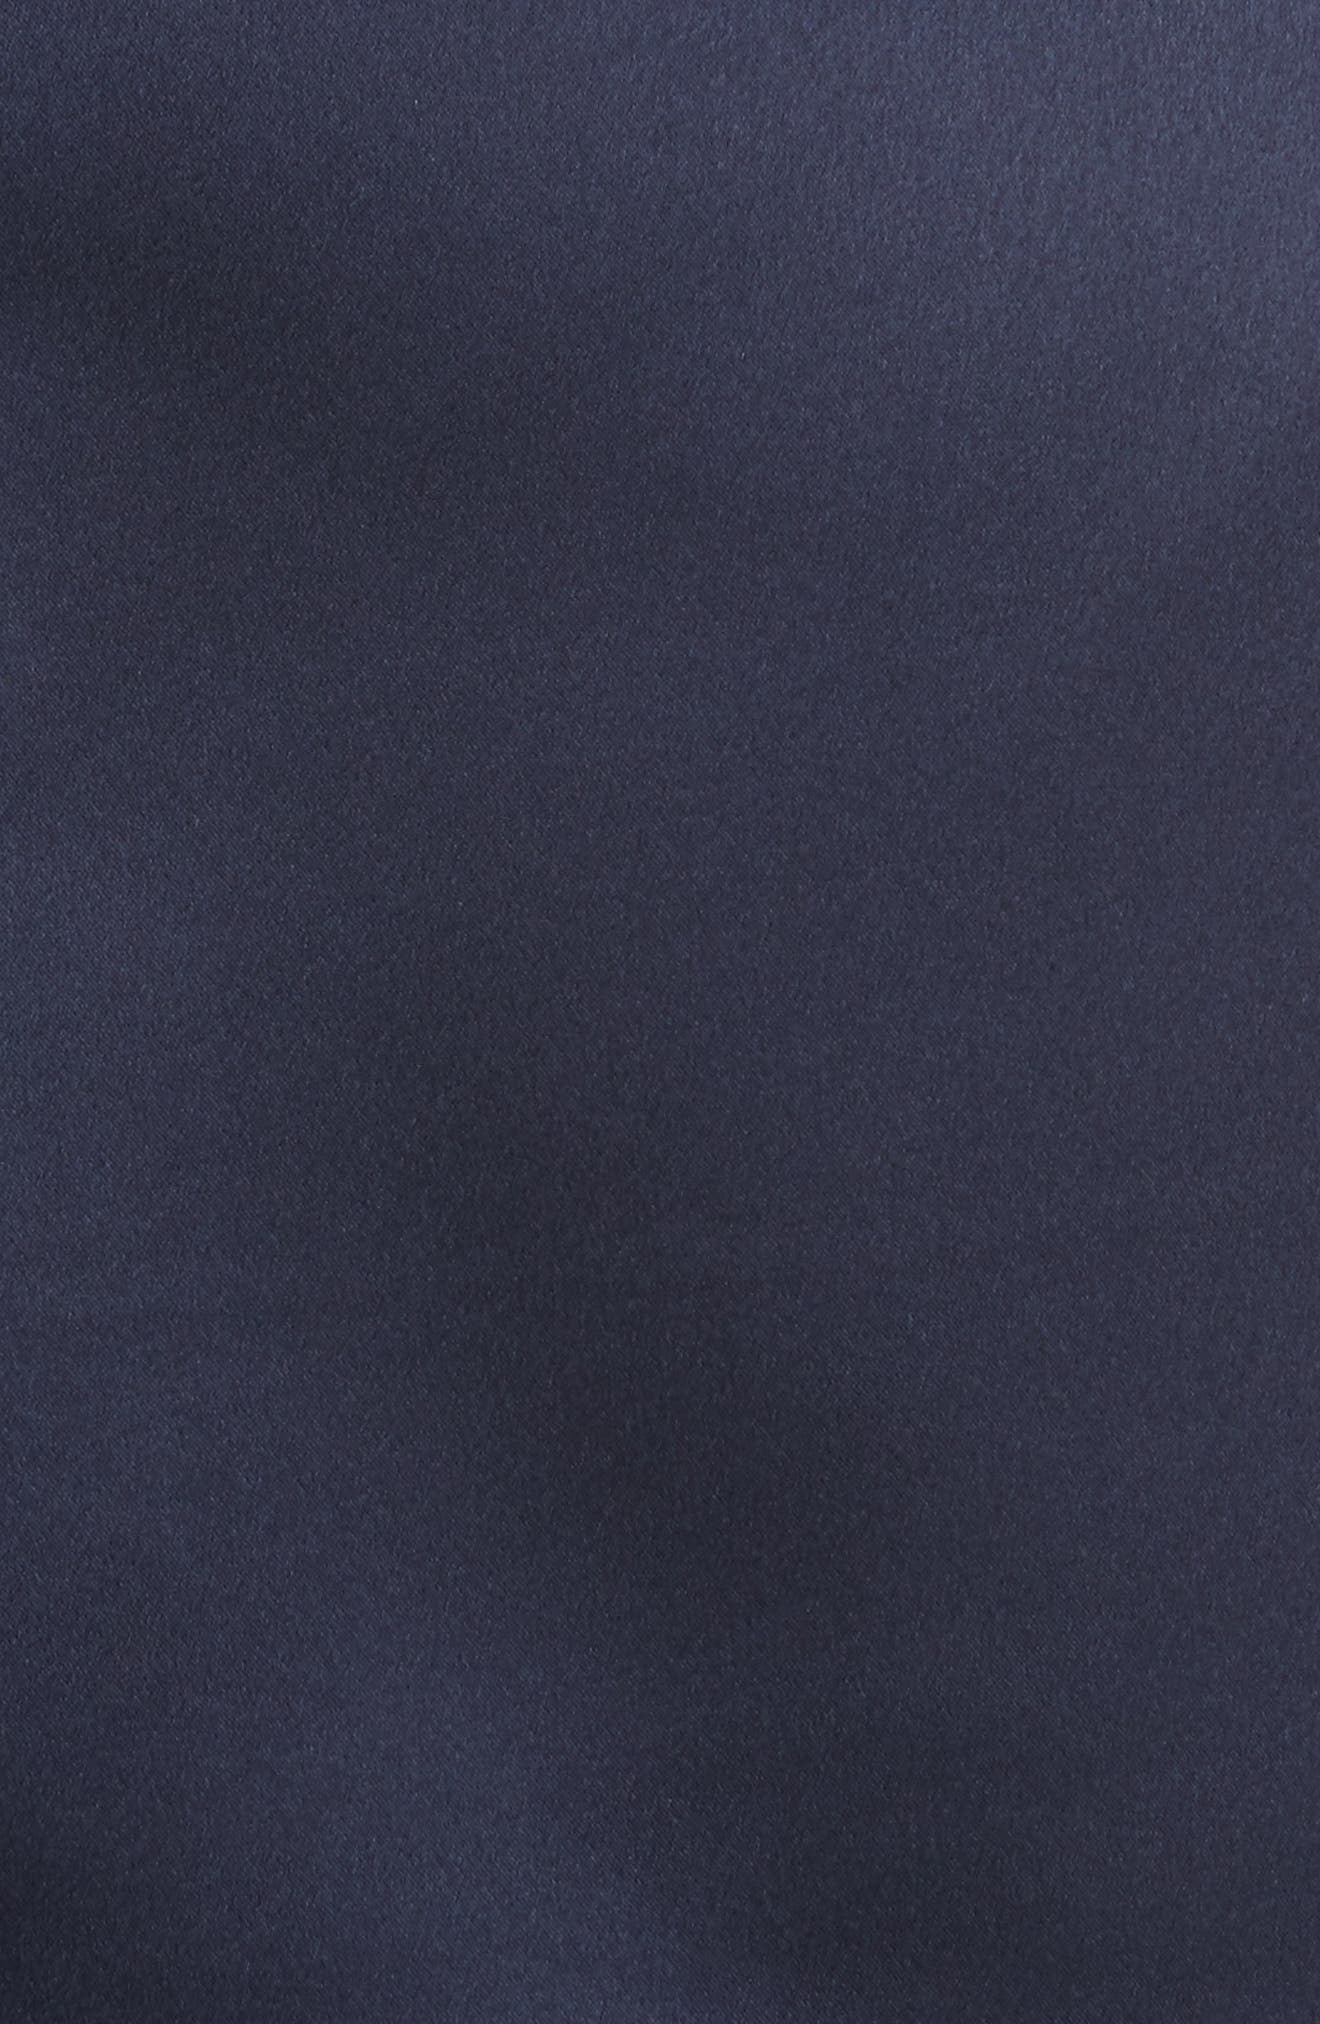 Satin Utility Miniskirt,                             Alternate thumbnail 5, color,                             Navy